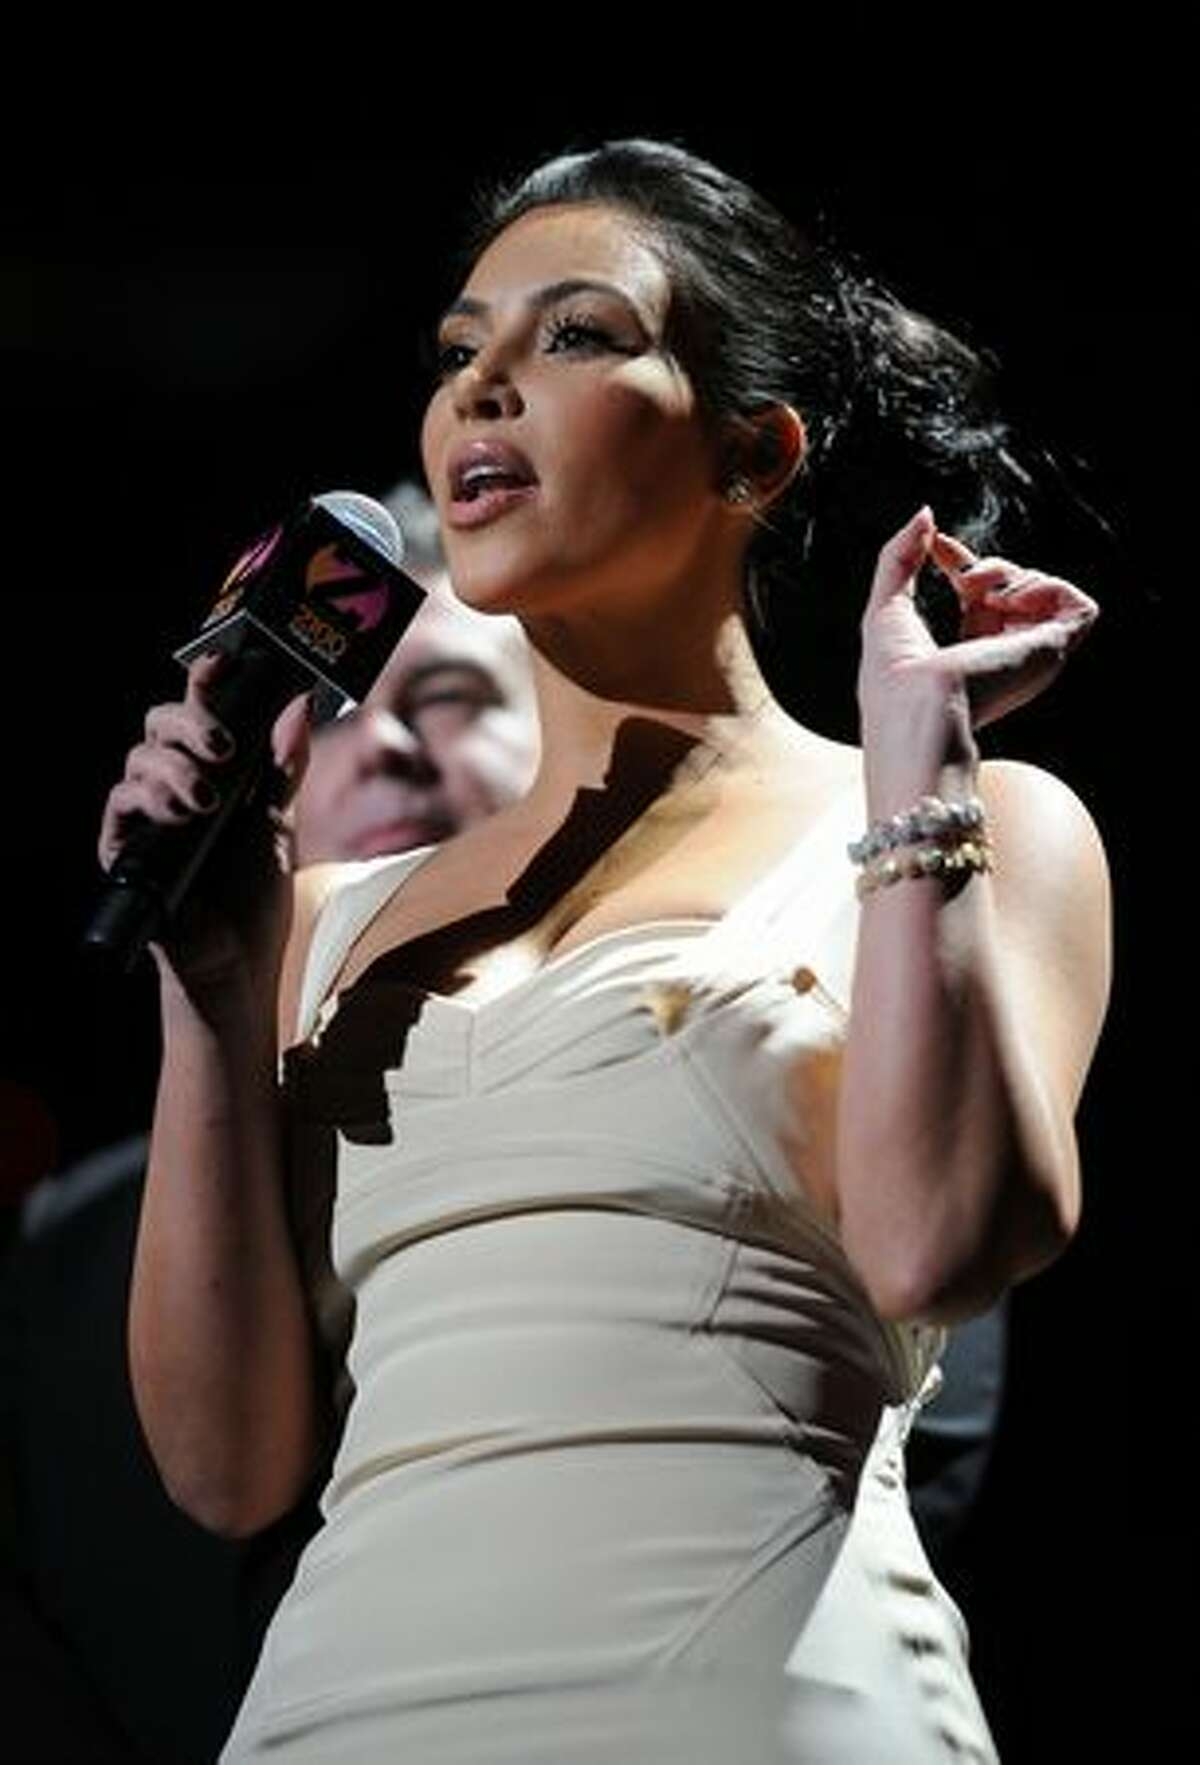 Kim Kardashian speaks onstage during Z100's Jingle Ball 2010 at Madison Square Garden in New York on Friday, Dec. 10, 2010.